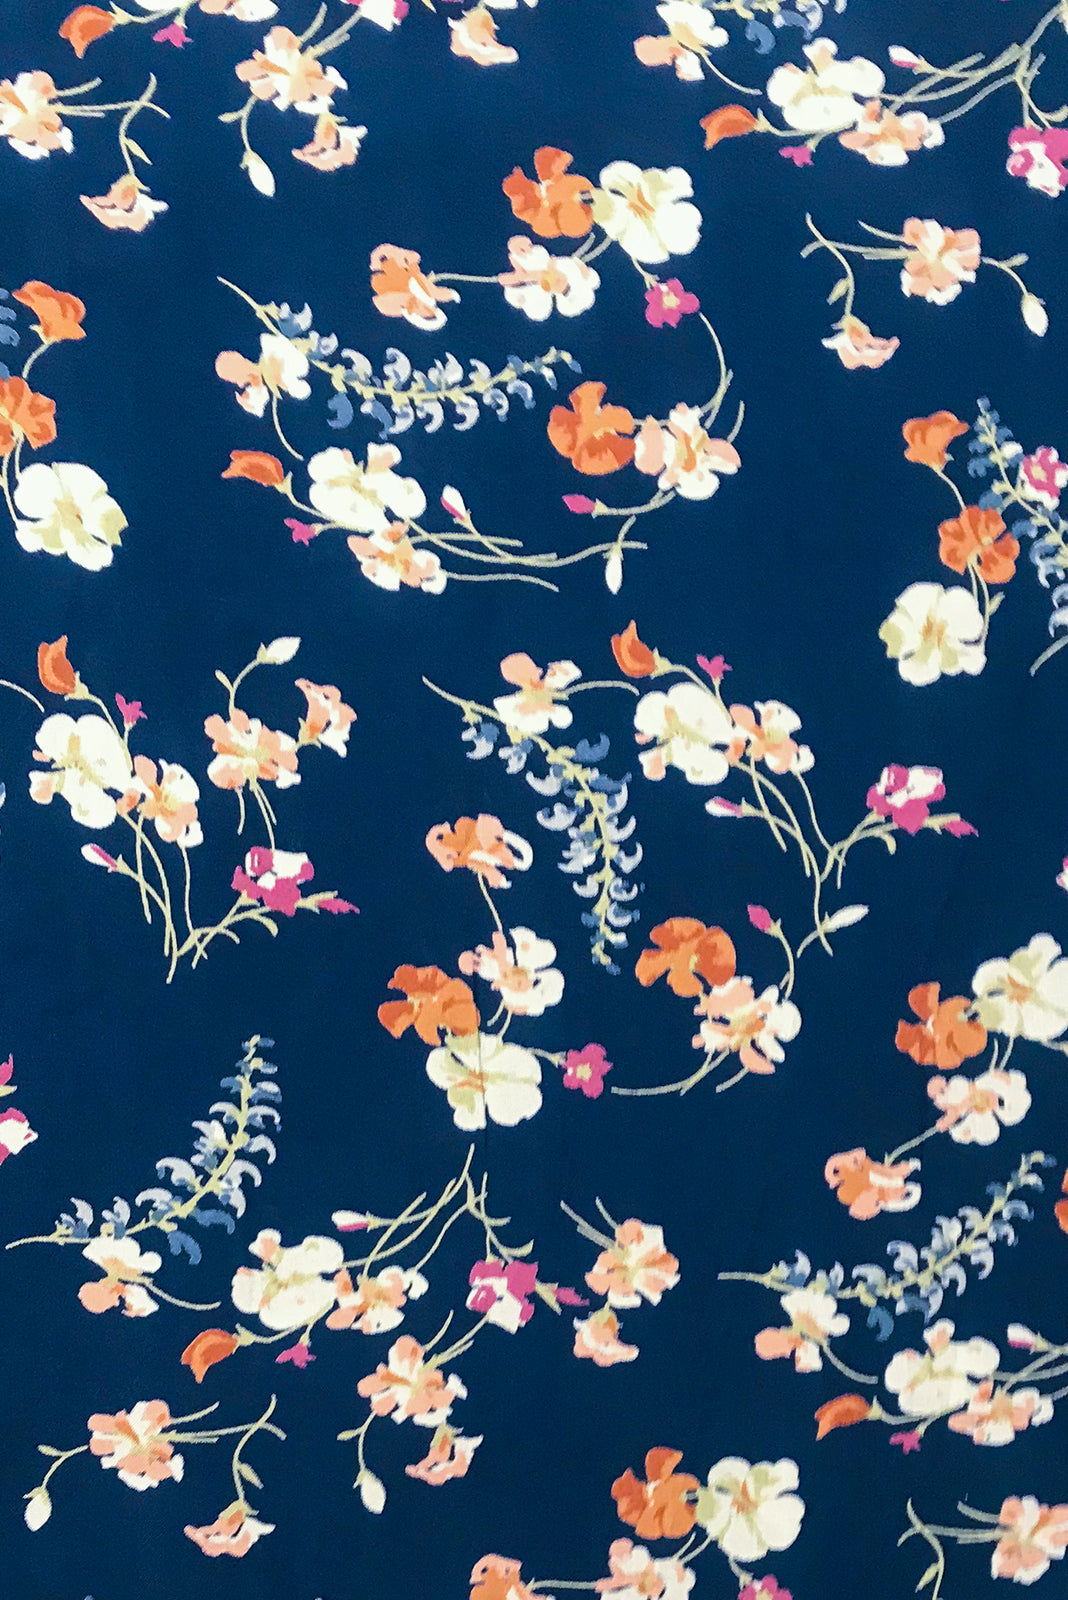 Fabric Swatch of Henrietta Wildflowers Navy Dress is made of woven 100% rayon in Navy base with a romantic pink, red and blue floral print.